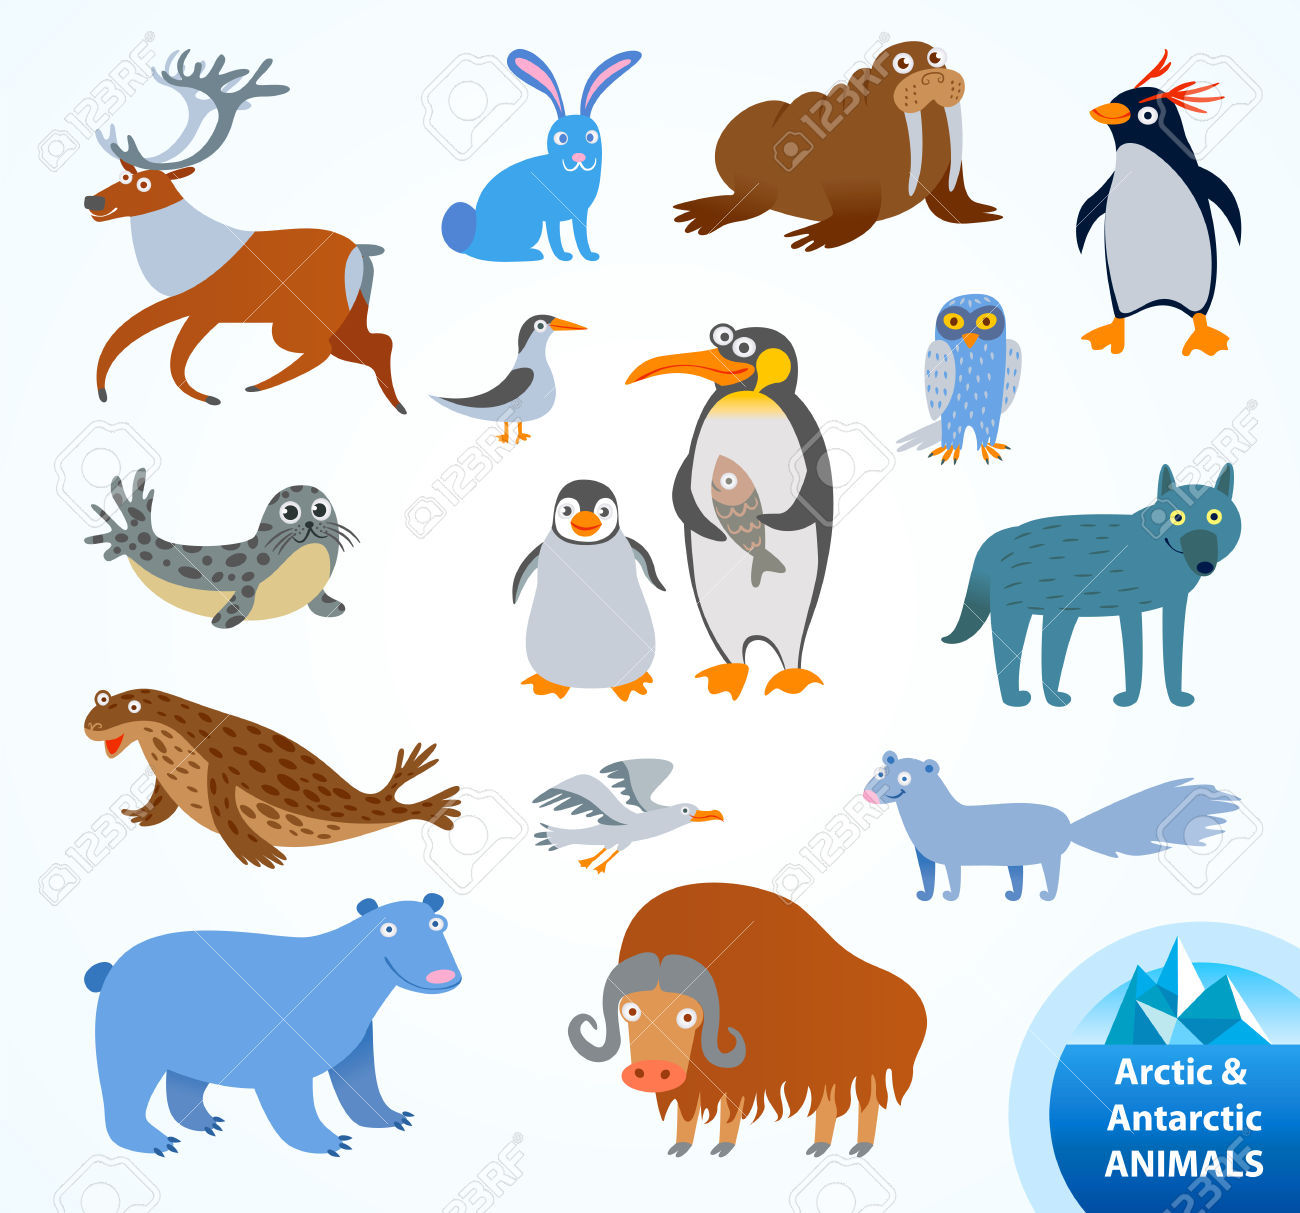 1300x1213 Arctic Fox Clipart Antarctic Animal 3035990